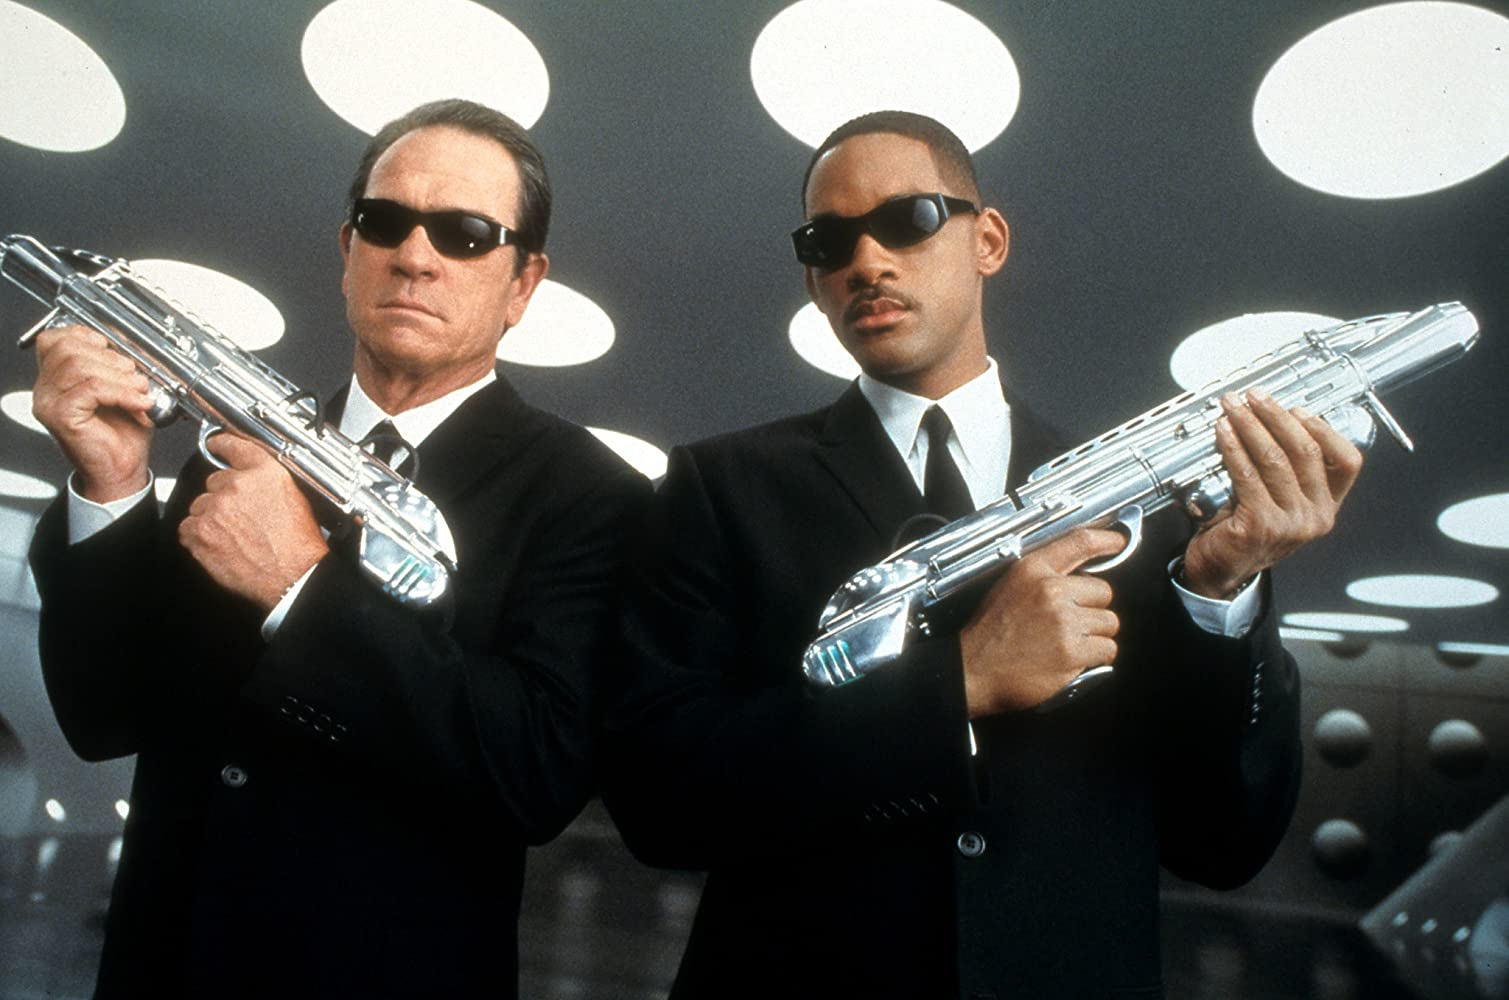 Tommy Lee Jones and Will Smith in Men in Black II (2002)